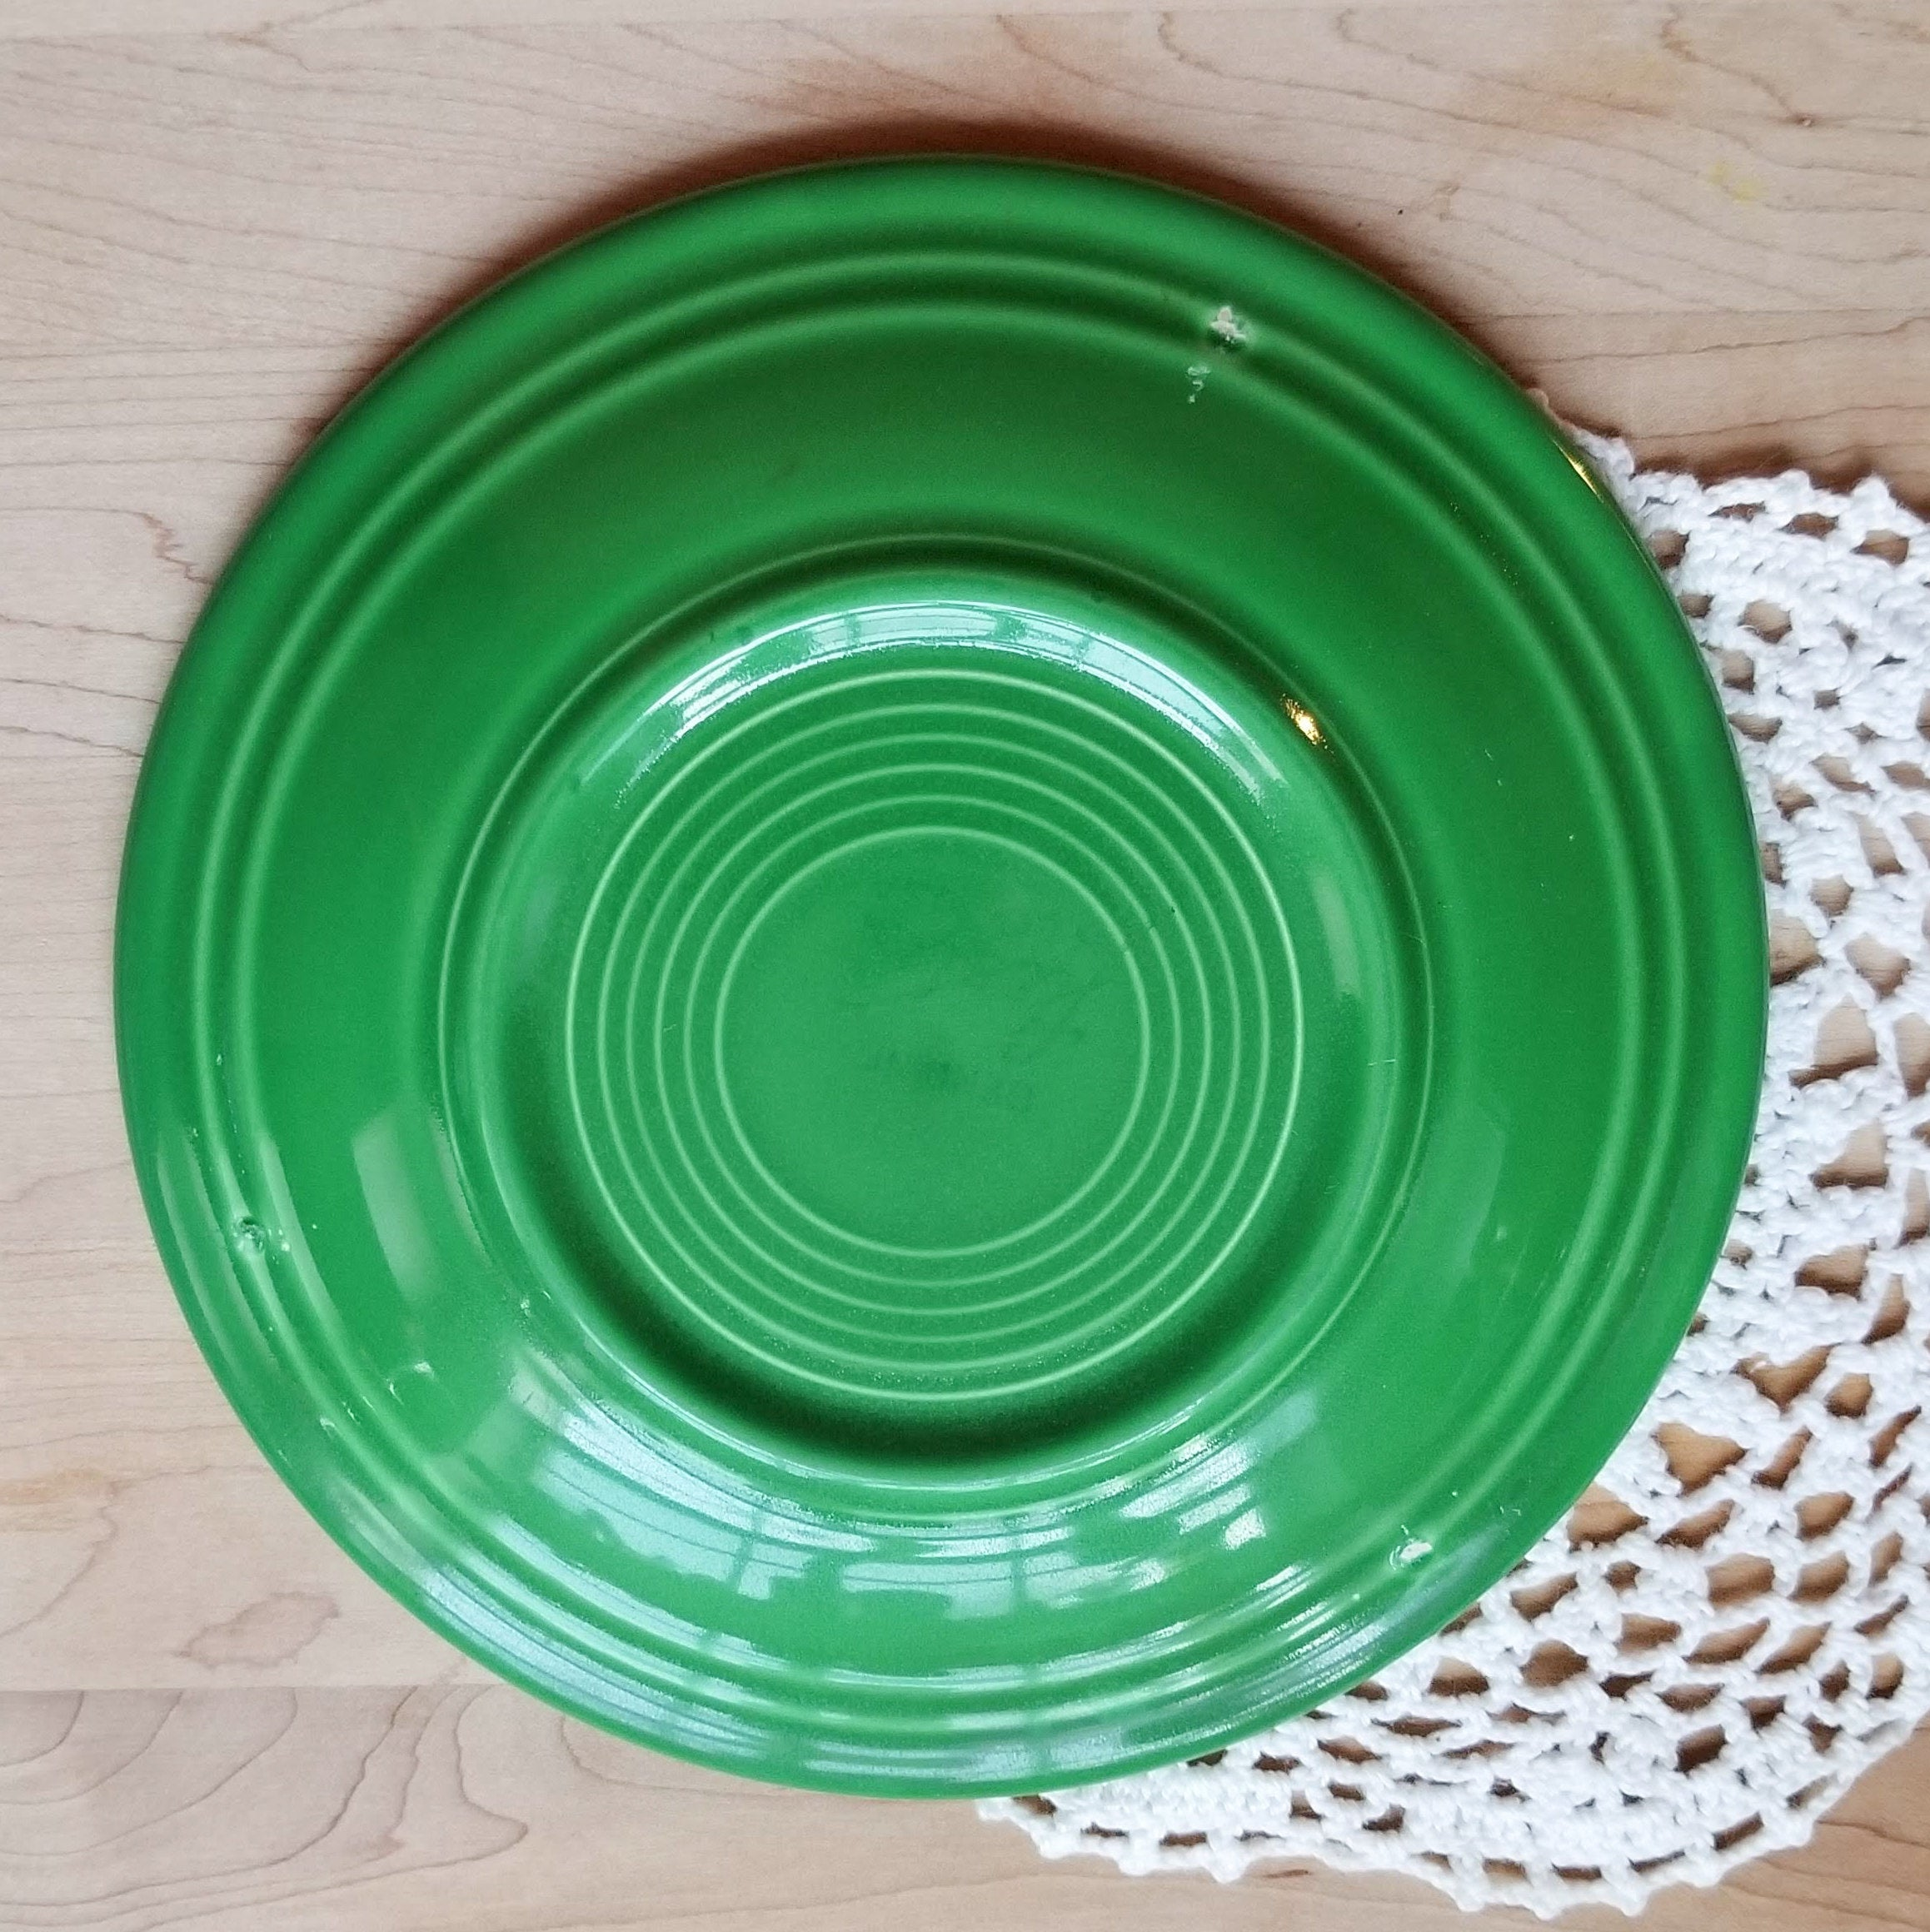 THREE Discontinued Original Salad Plate Fiesta Medium Green (Older) by HOMER LAUGHLIN